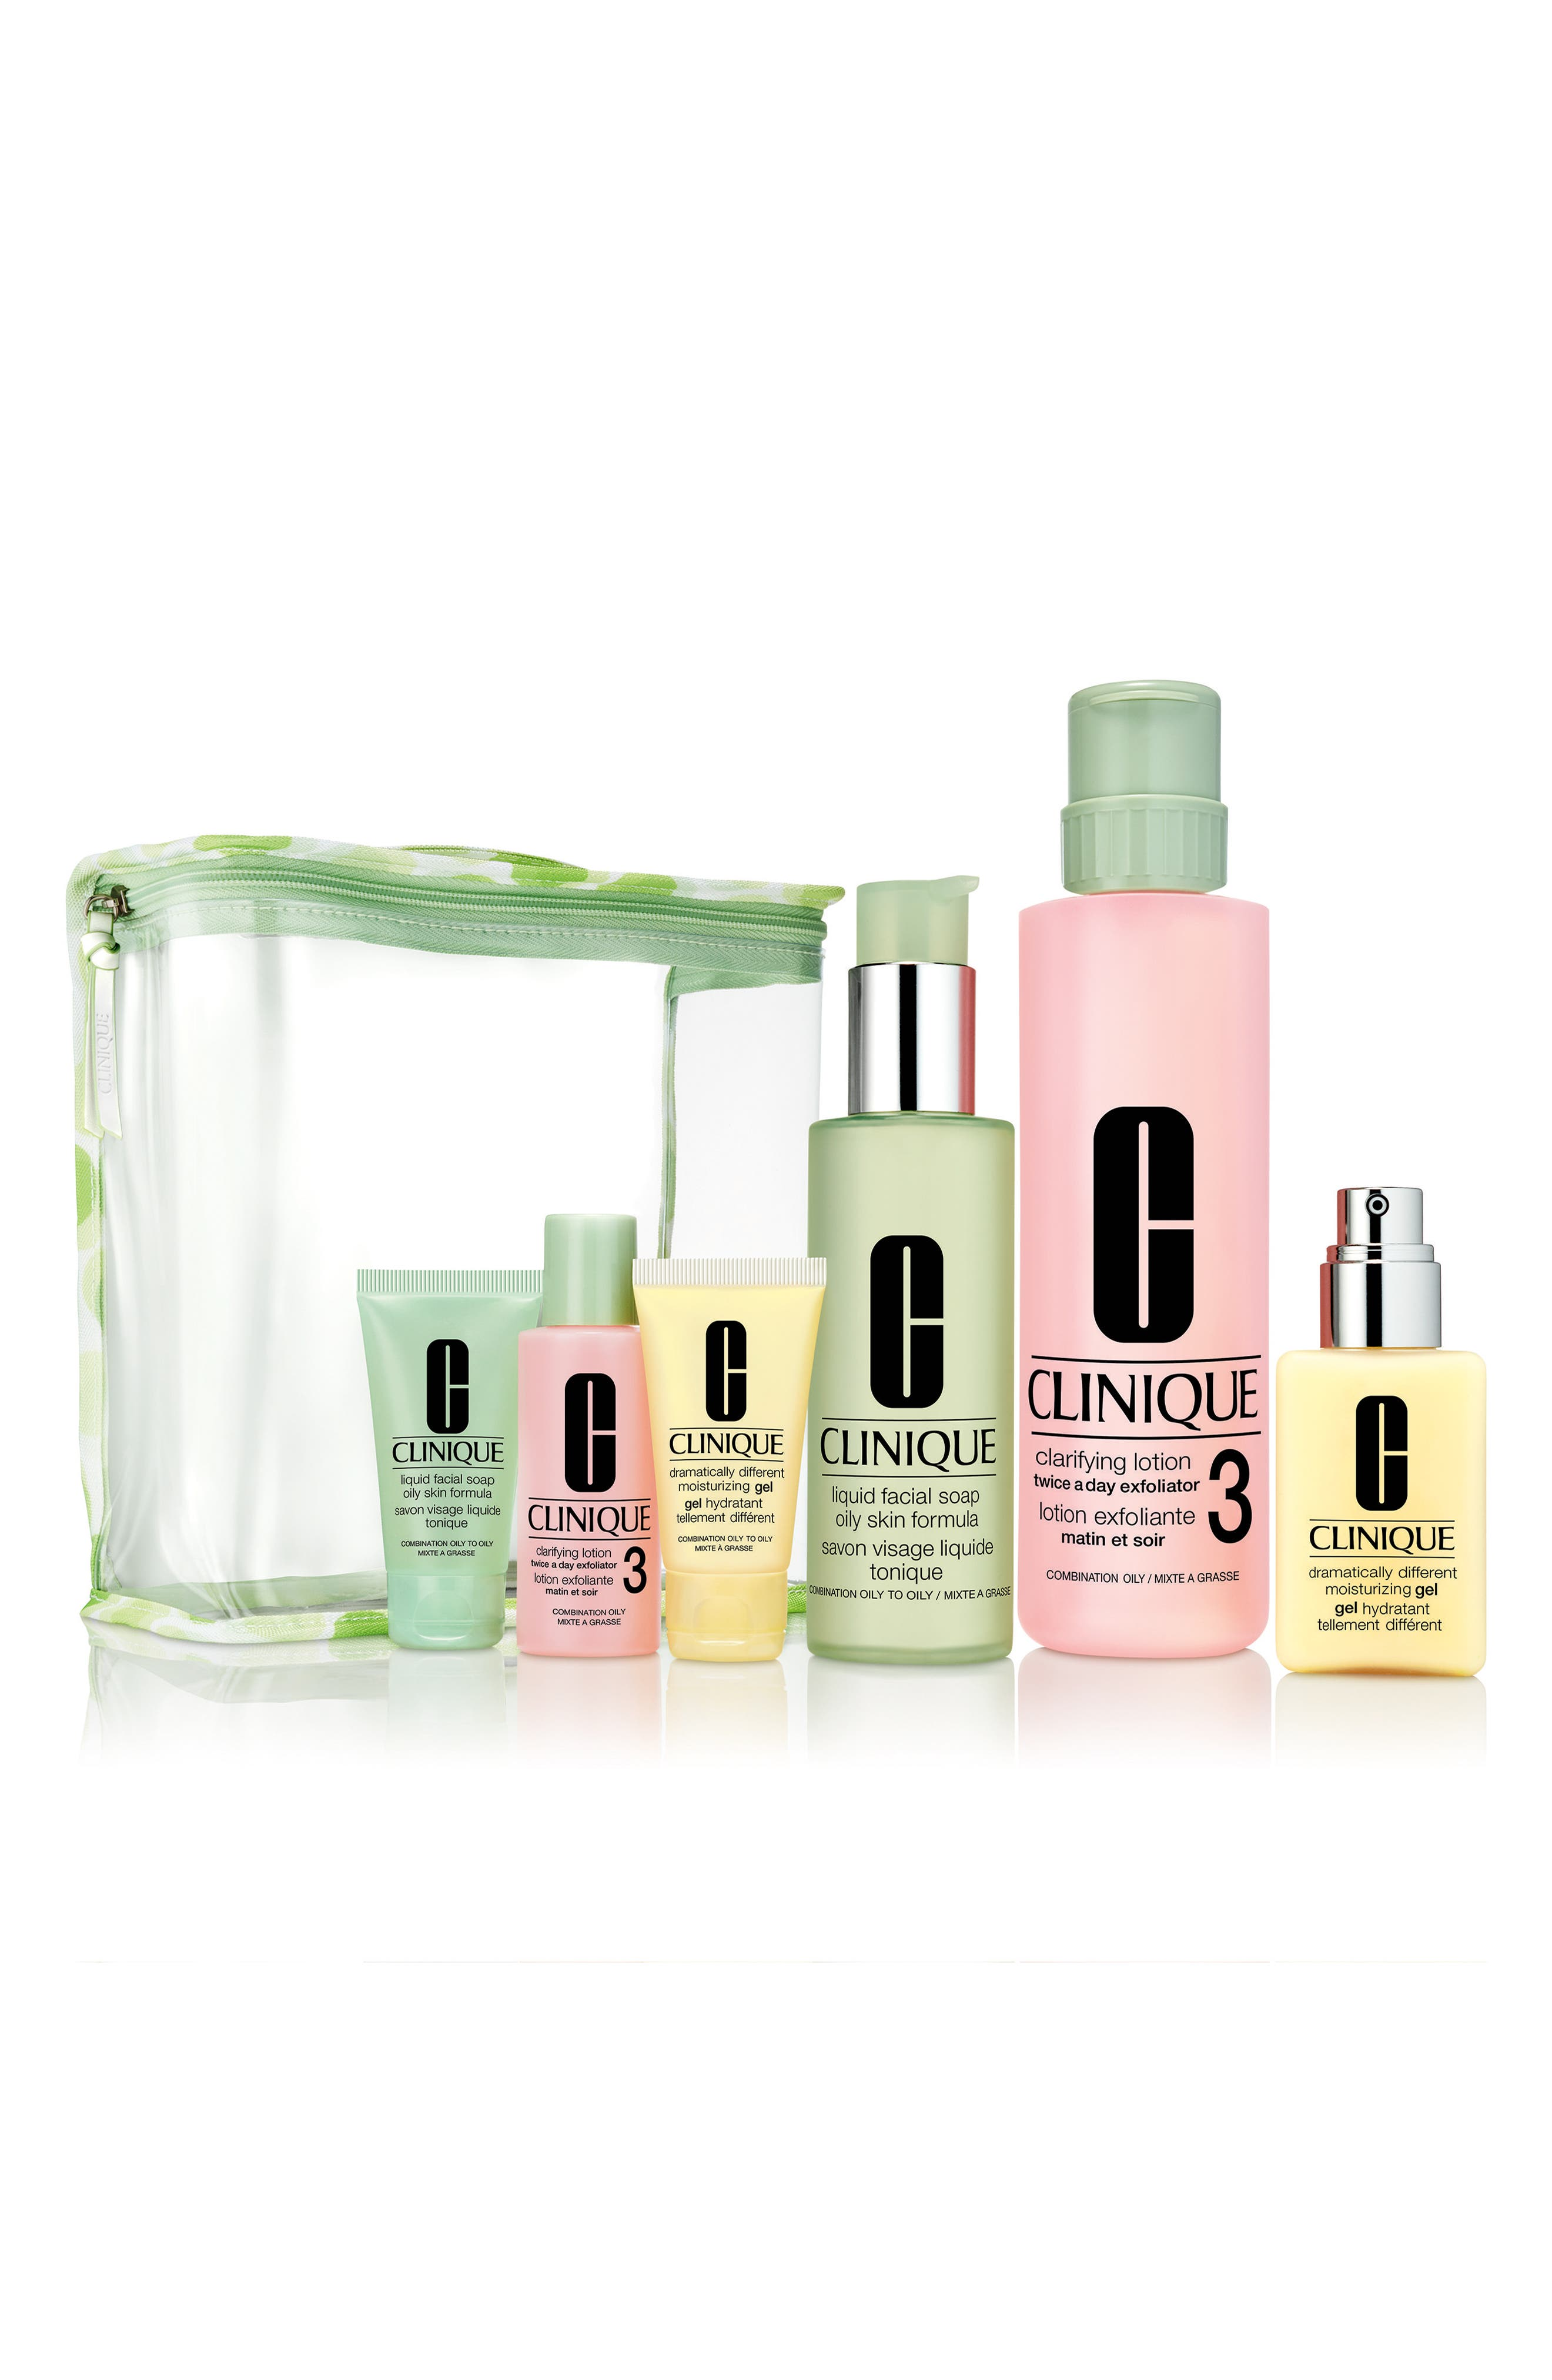 Alternate Image 1 Selected - Clinique Great Skin Everywhere Skin Types III & IV Set ($92.50 Value)